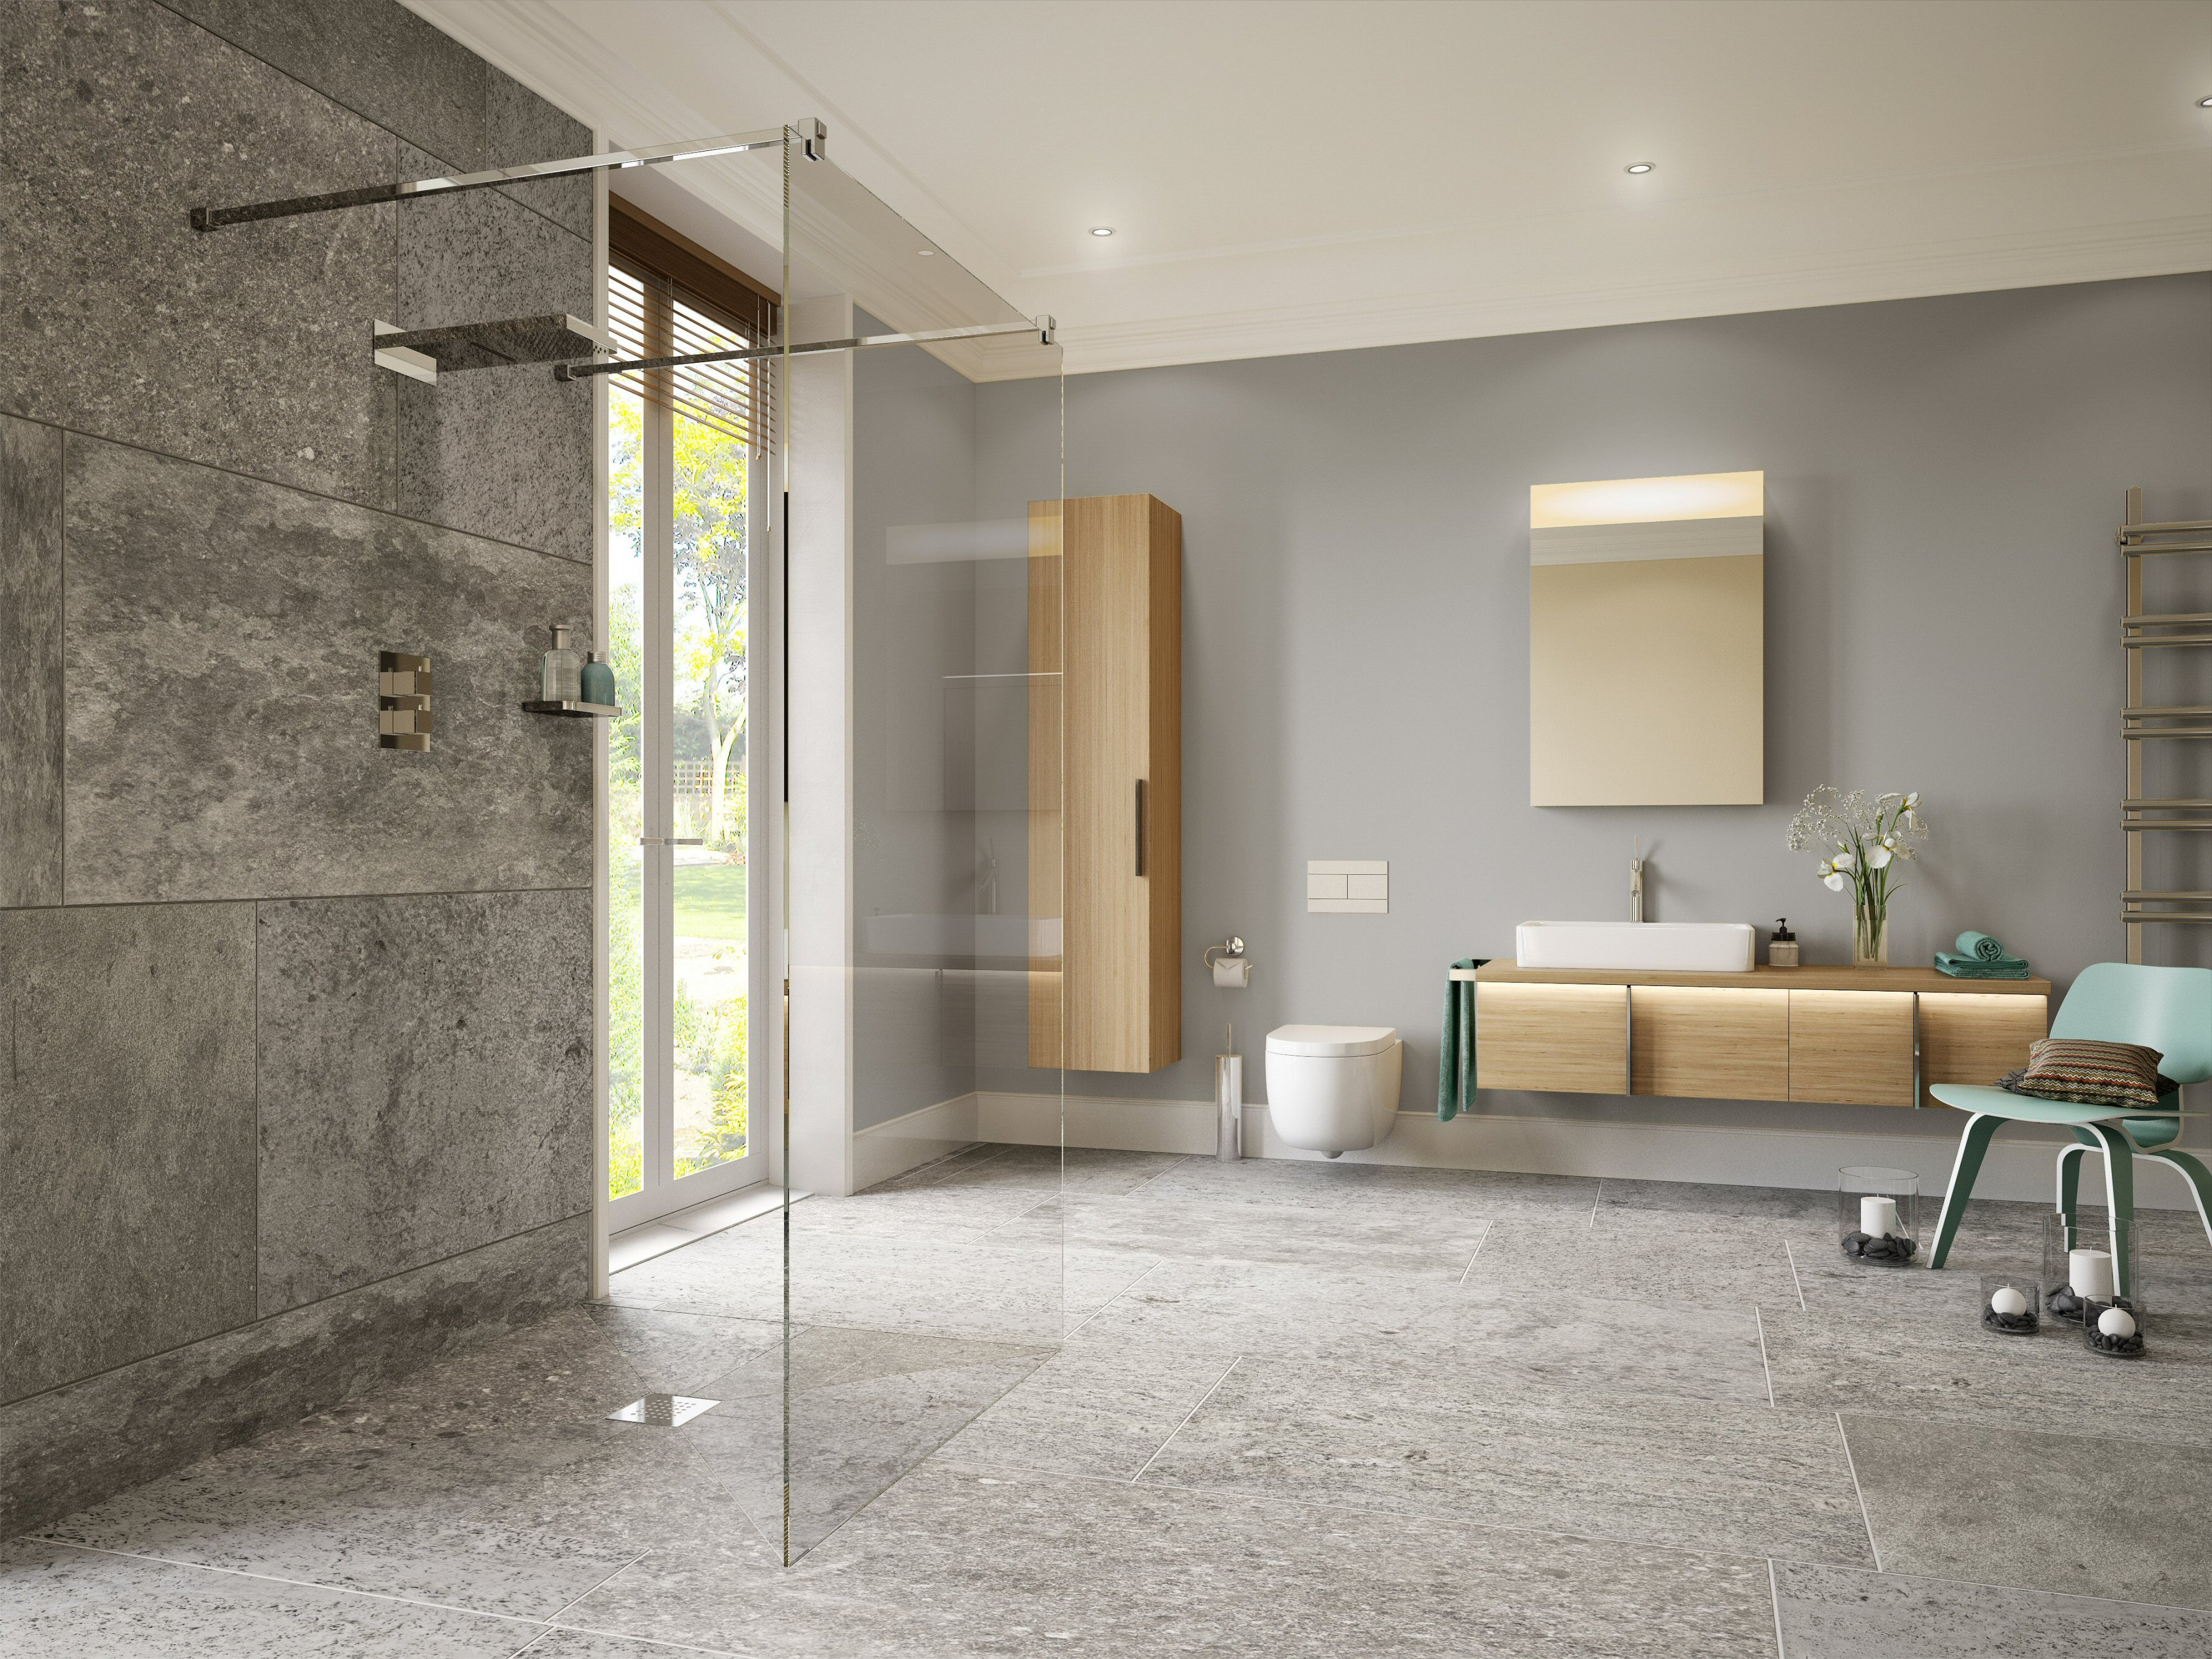 On the level lifetime wet rooms design buy build for Wet room design ideas pictures